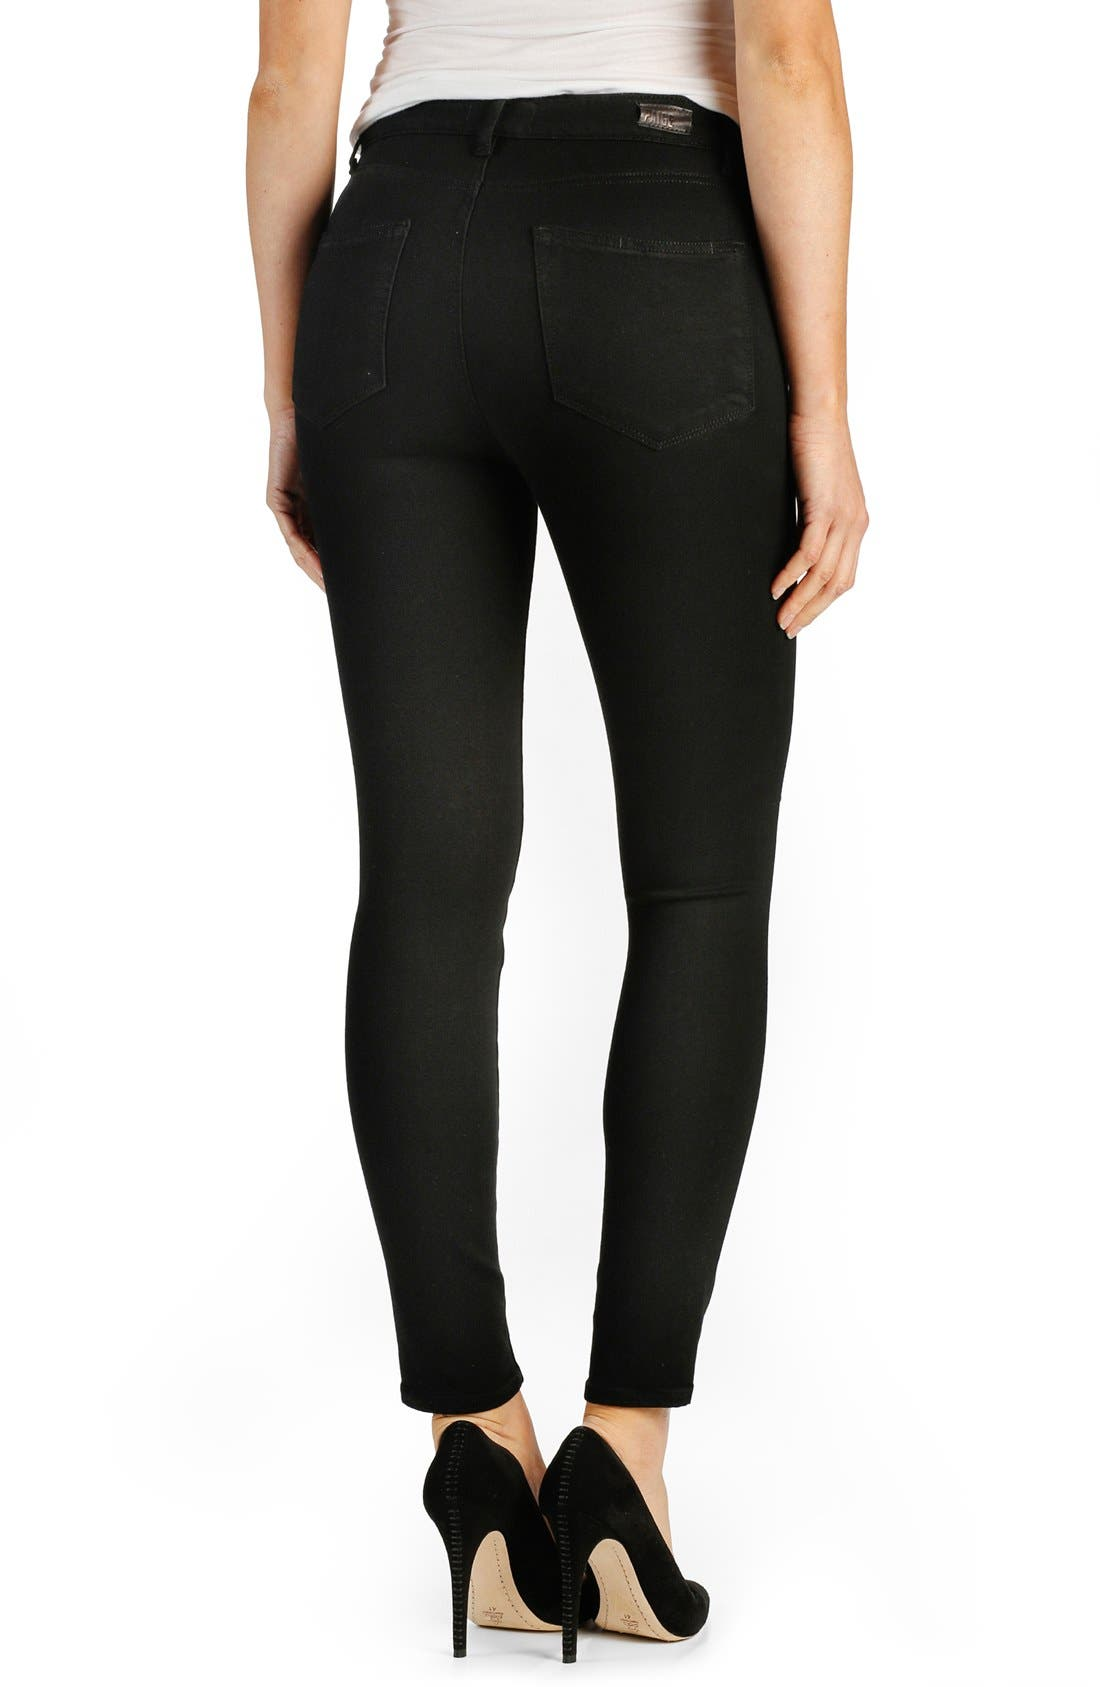 'Transcend - Hoxton' High Rise Destroyed Ankle Ultra Skinny Jeans,                             Alternate thumbnail 2, color,                             001